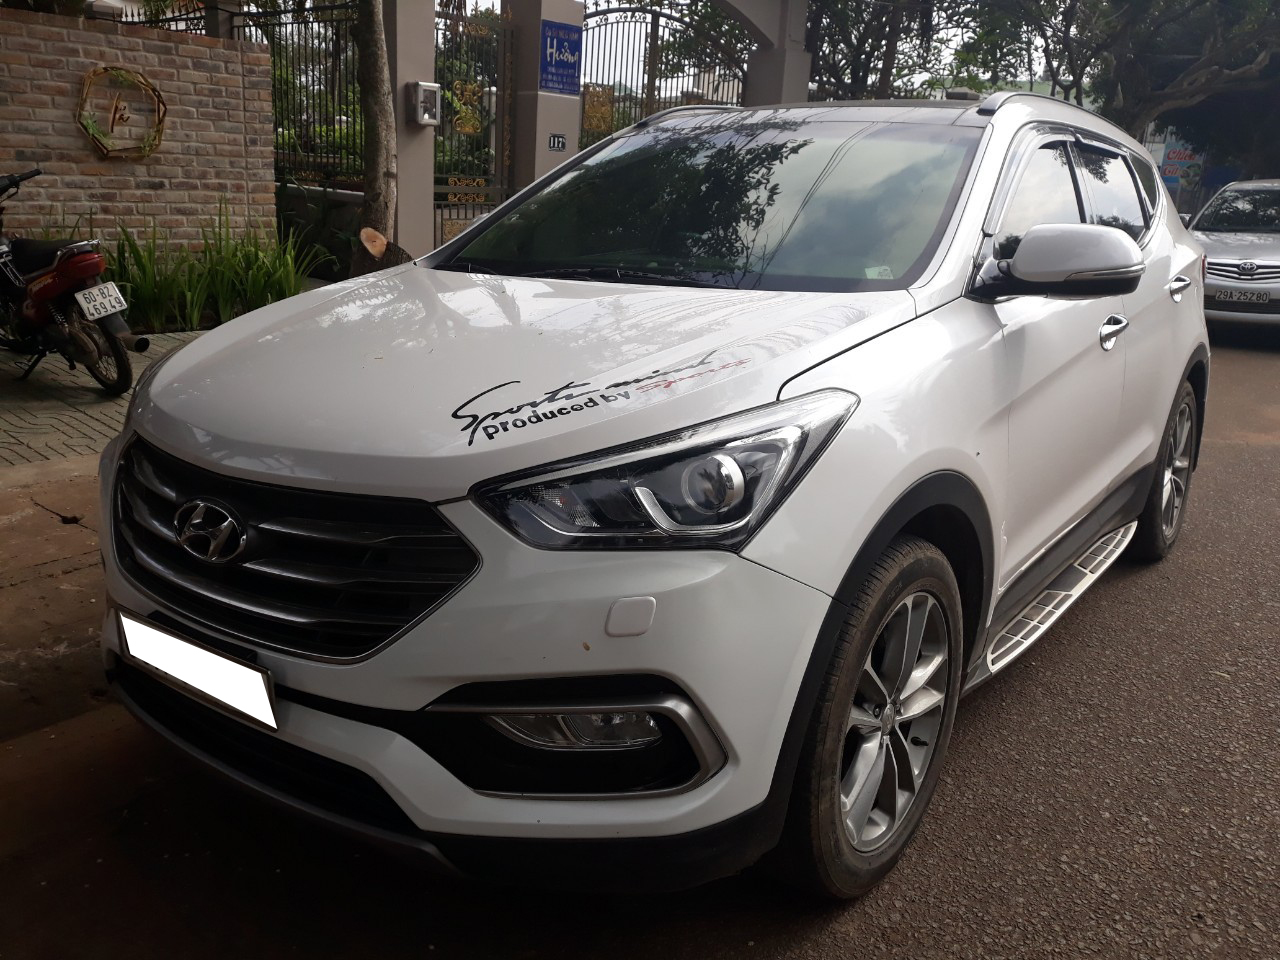 Hyundai Santa Fe 2.4AT 4WD 2016